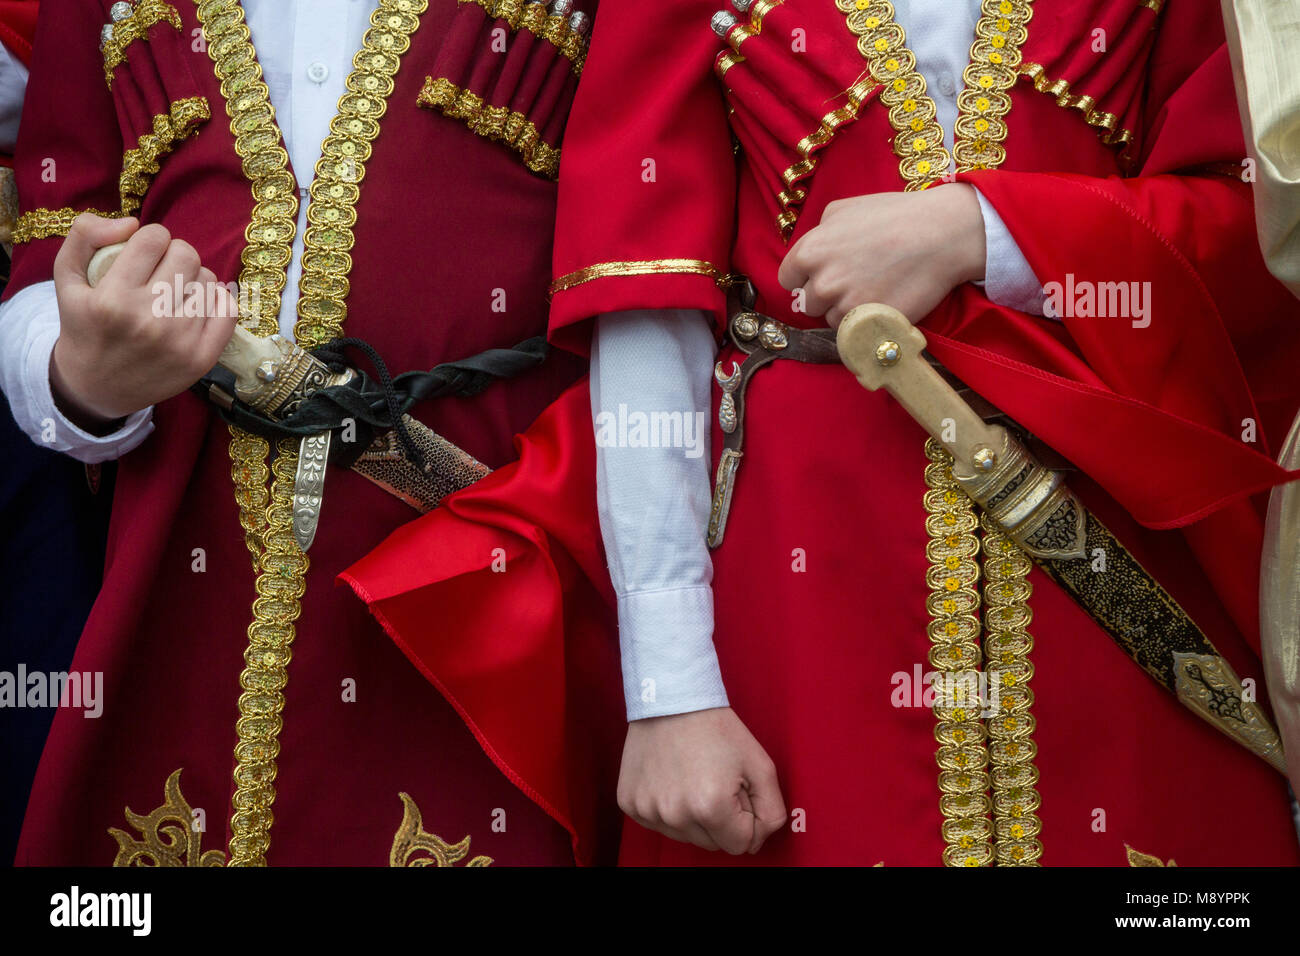 Dagestan boys attend a ceremony to admit children into the Pioneer movement, in Moscow's Red Square, Russia - Stock Image